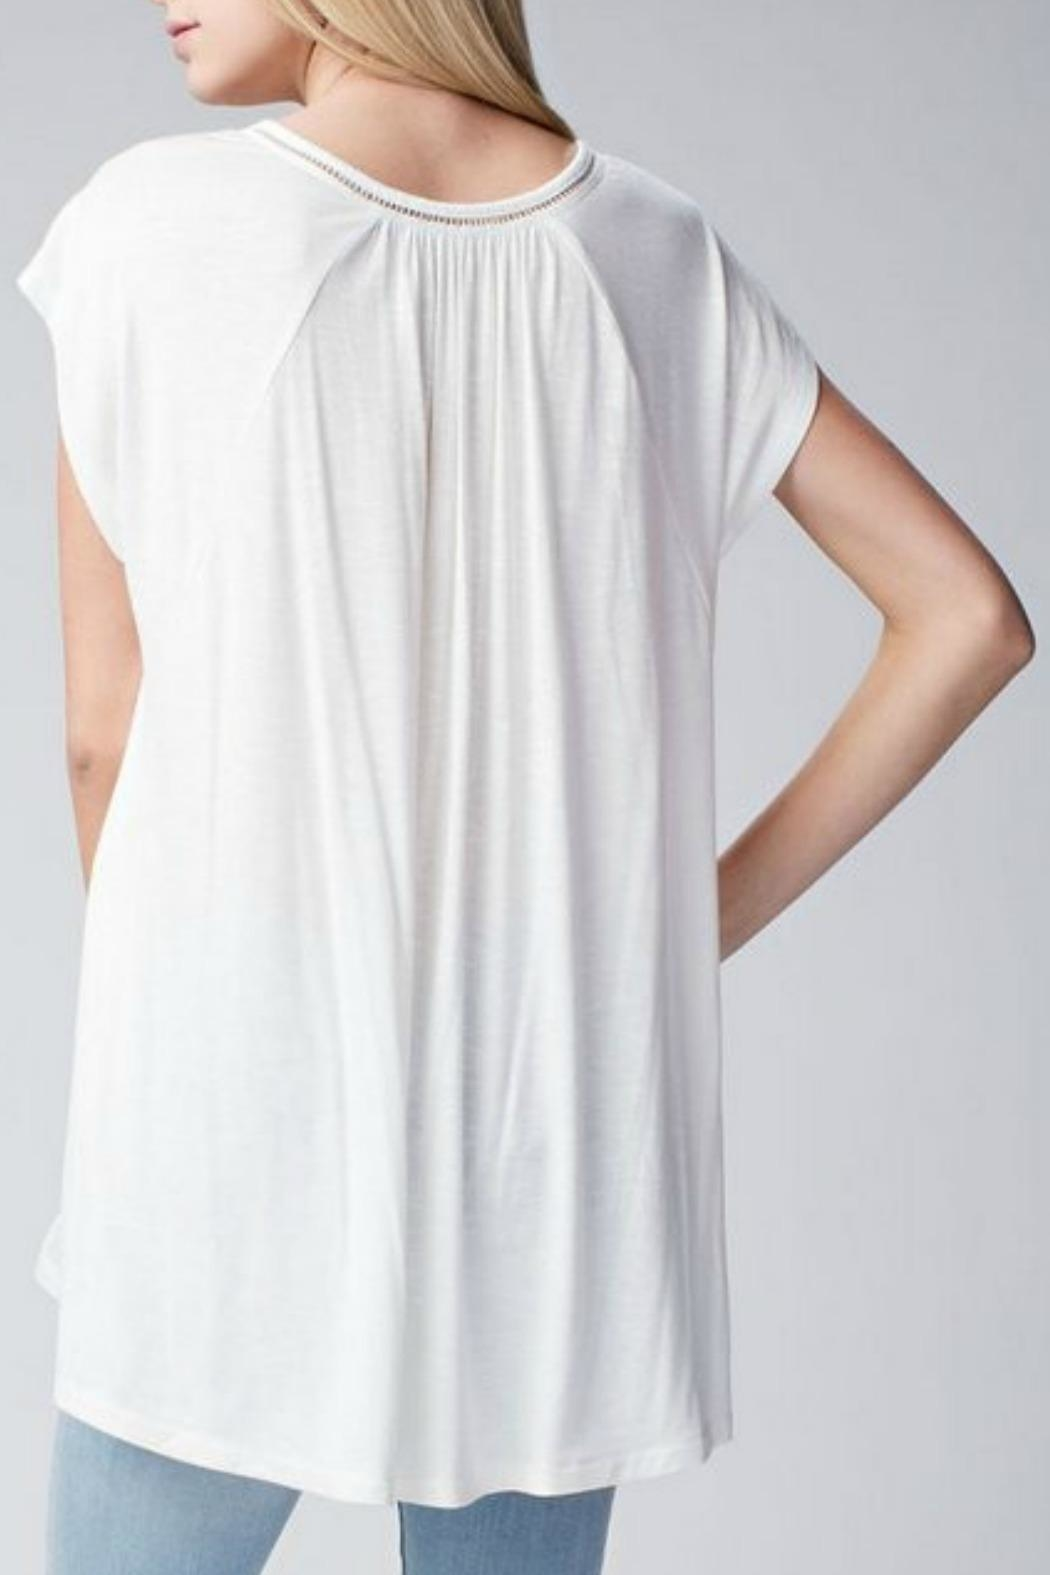 Jodifl Relaxed Lace-Trimmed Tunic - Front Full Image